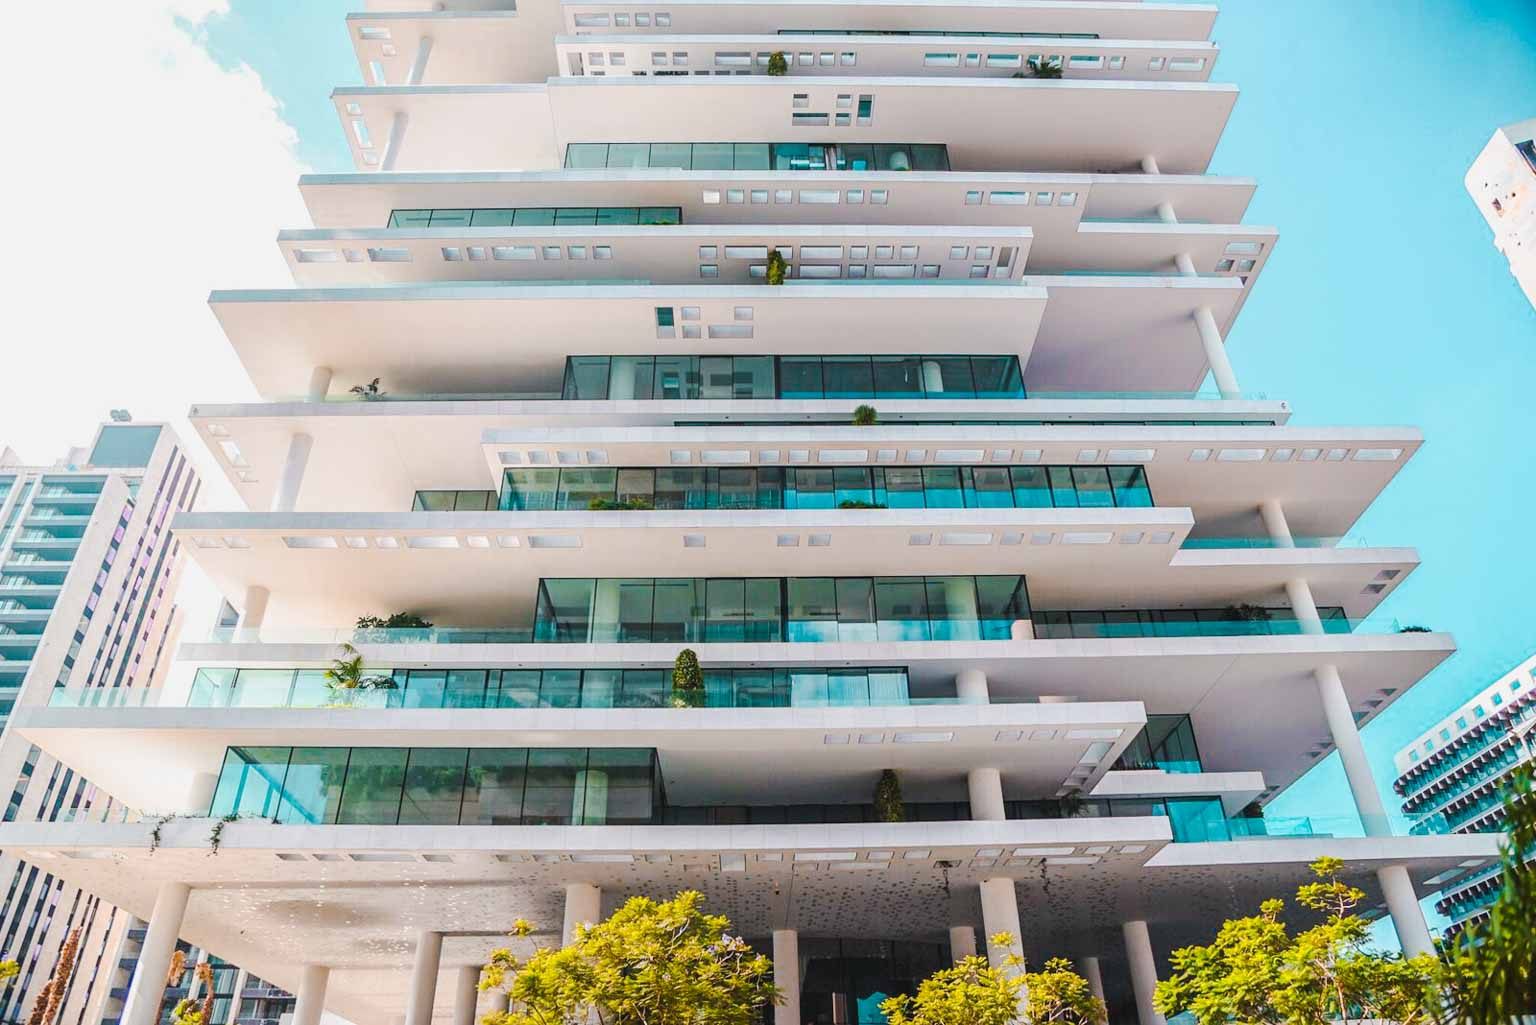 beirut terraces mawad architectural project beirut